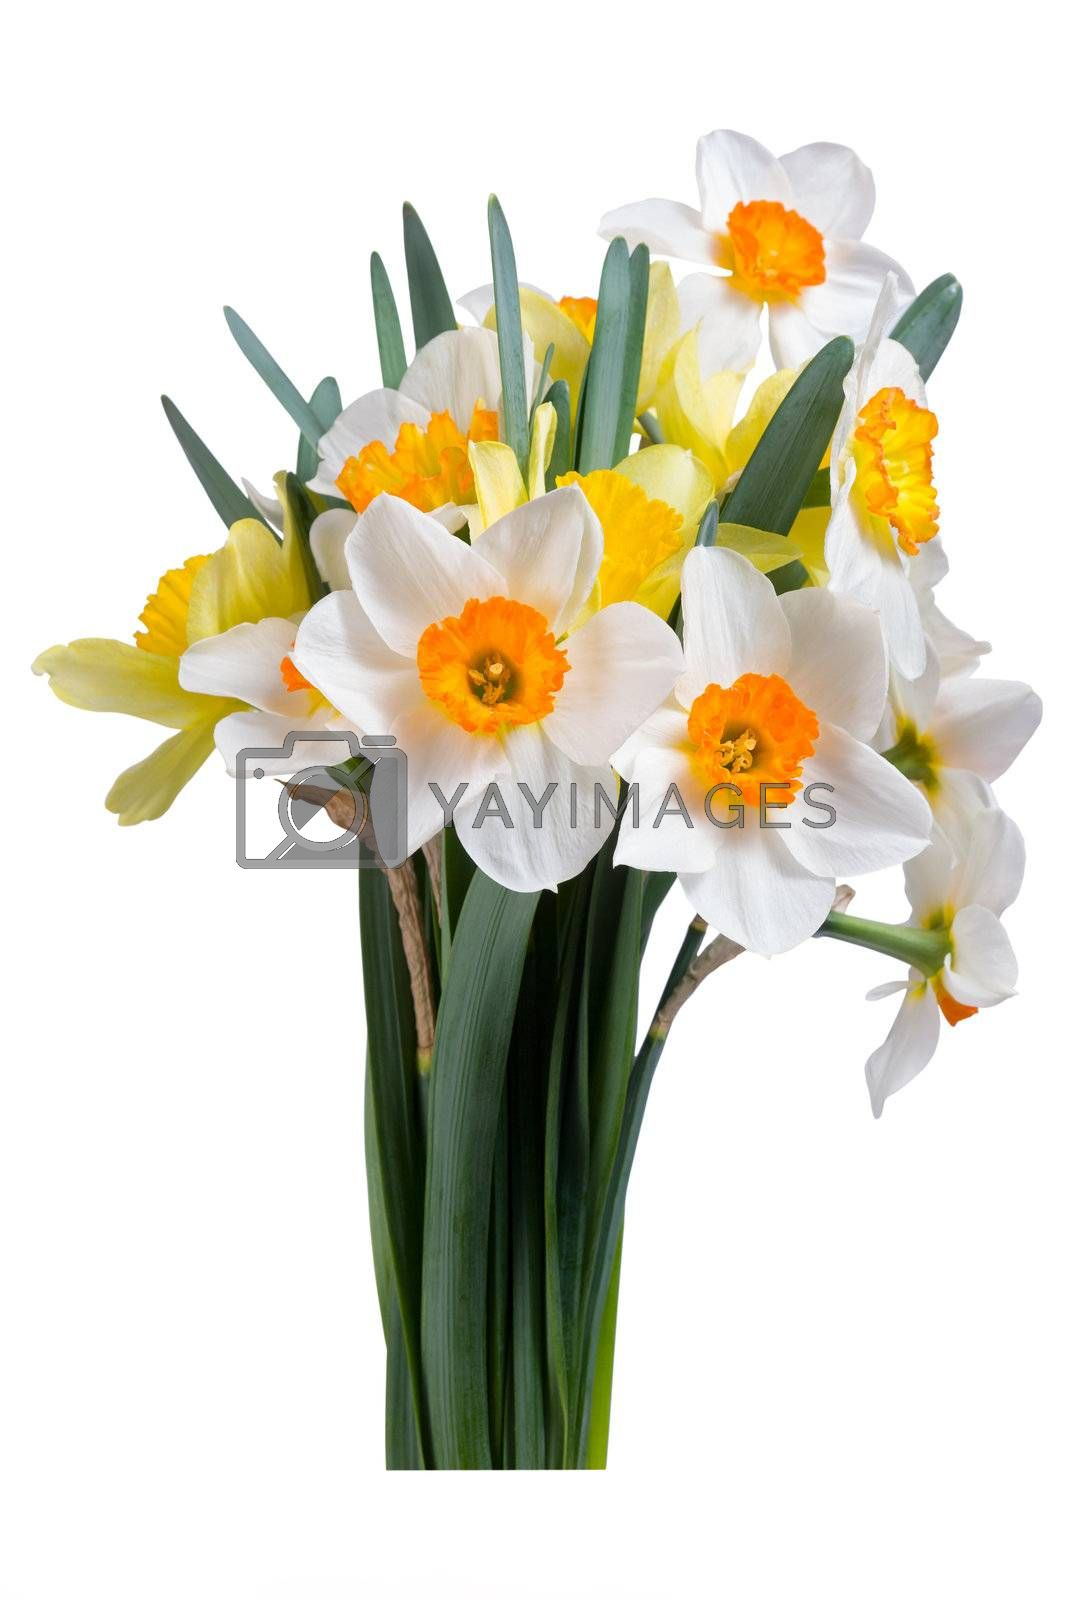 Beautyful bouquet of yellow and white narcissus with leaves isolated on a white background